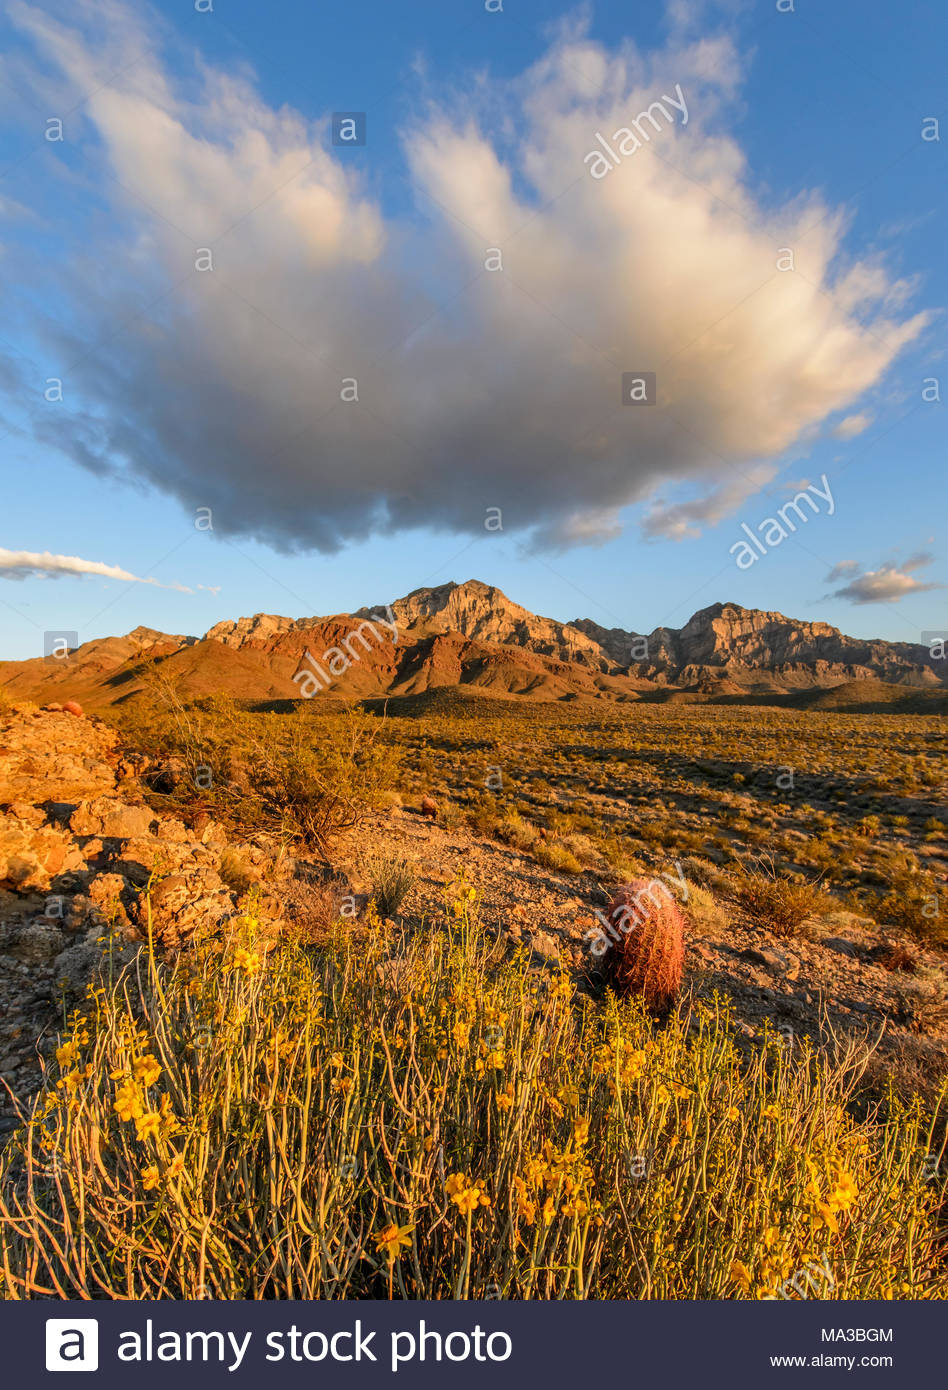 Cloud Formation, Menodora and Barrel Cactus at Sunset, Mojave National Preserve, California - Stock Image